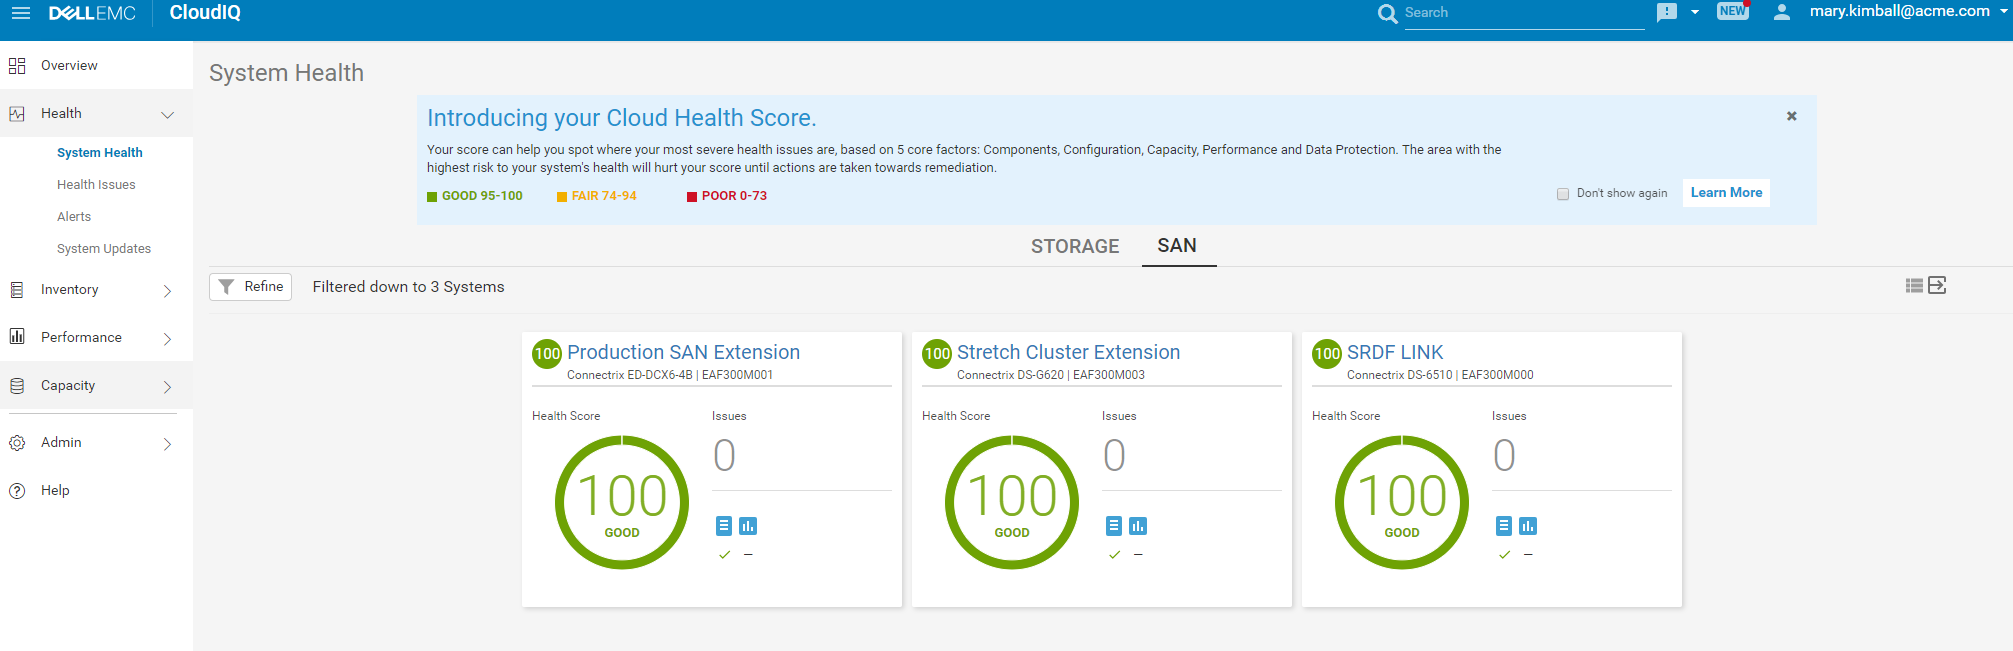 System Health View – SAN